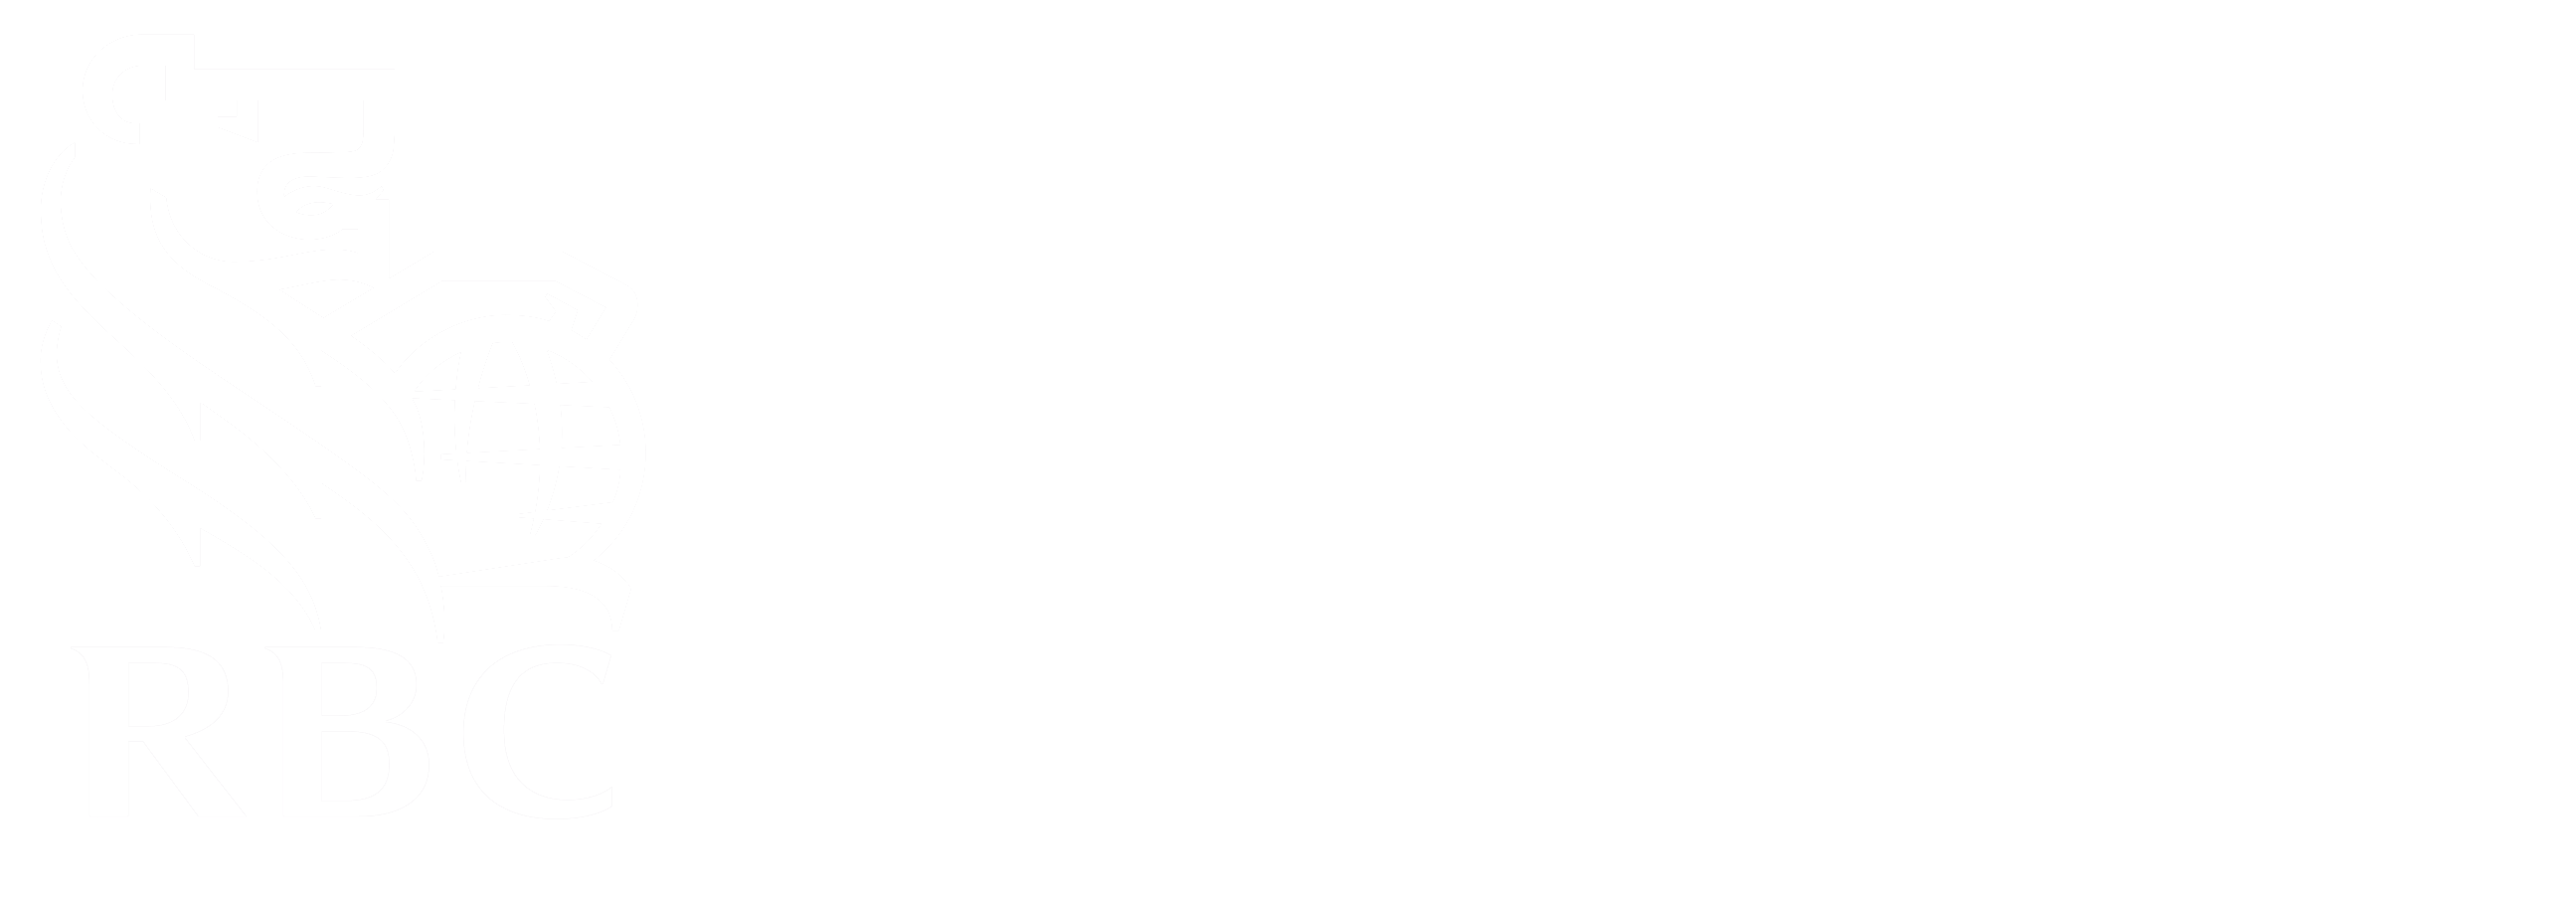 RBC Wealth Management - U.S. logo